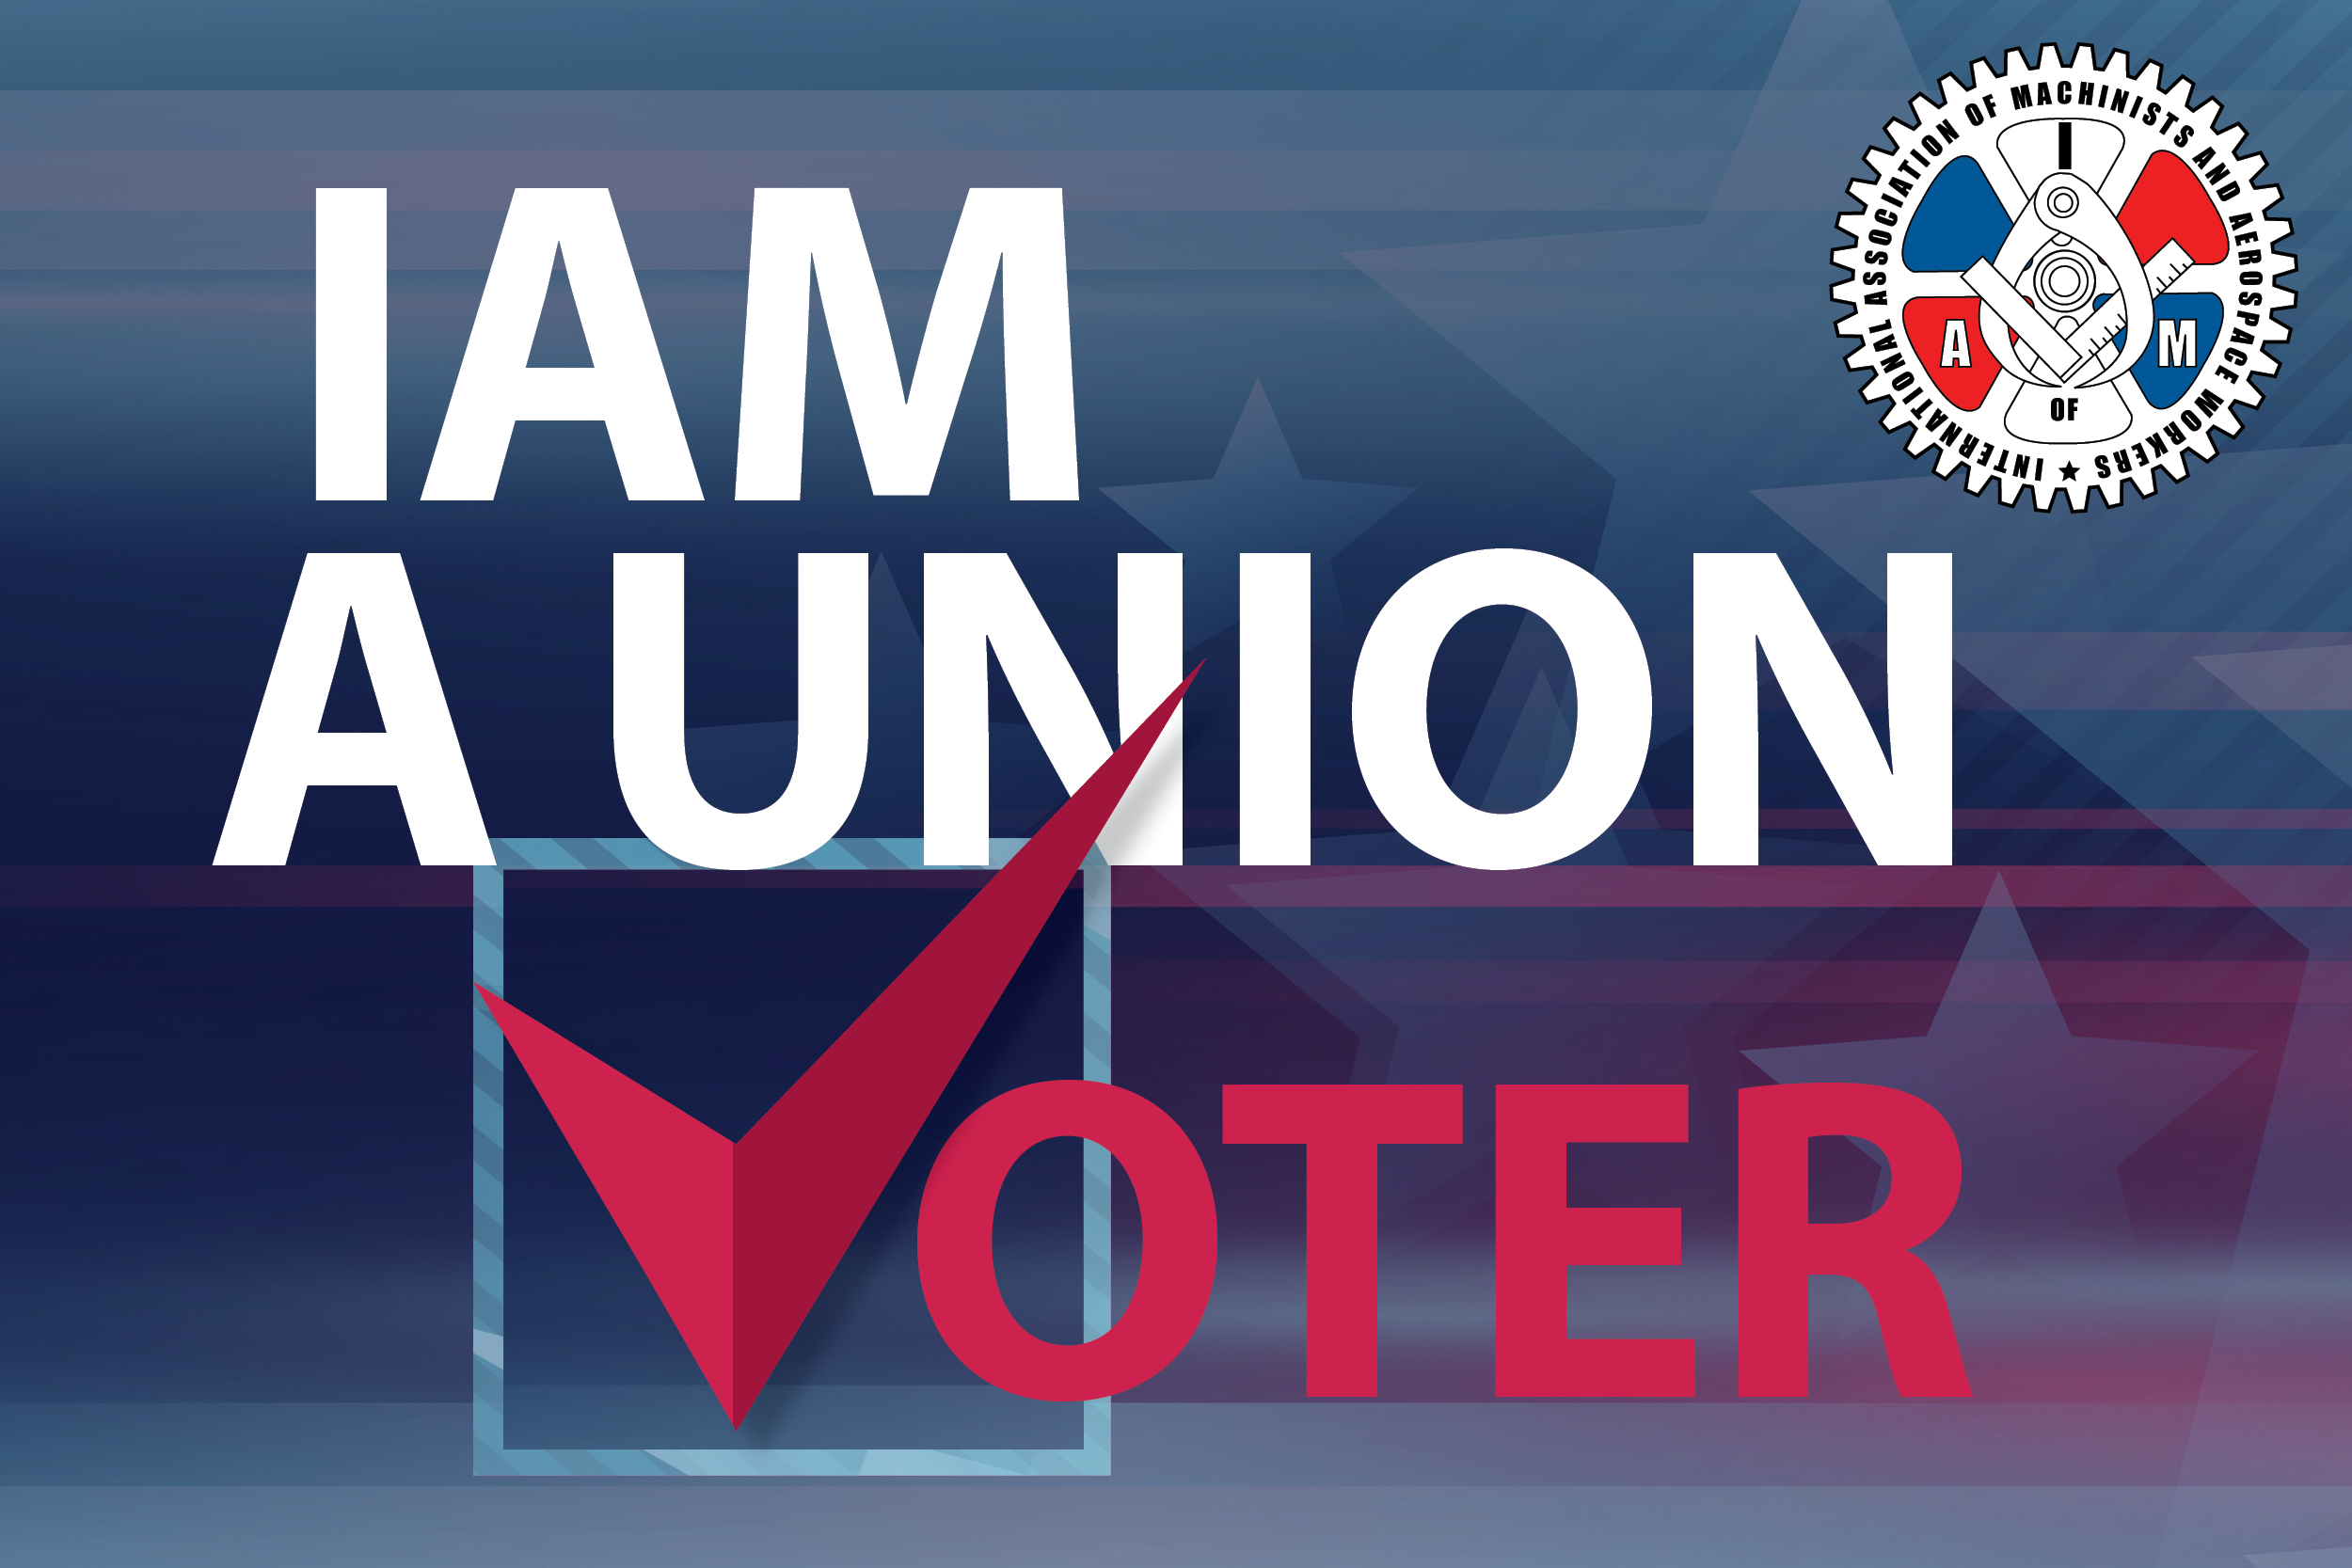 Machinists Union: Working People Drove Midterm Election Results